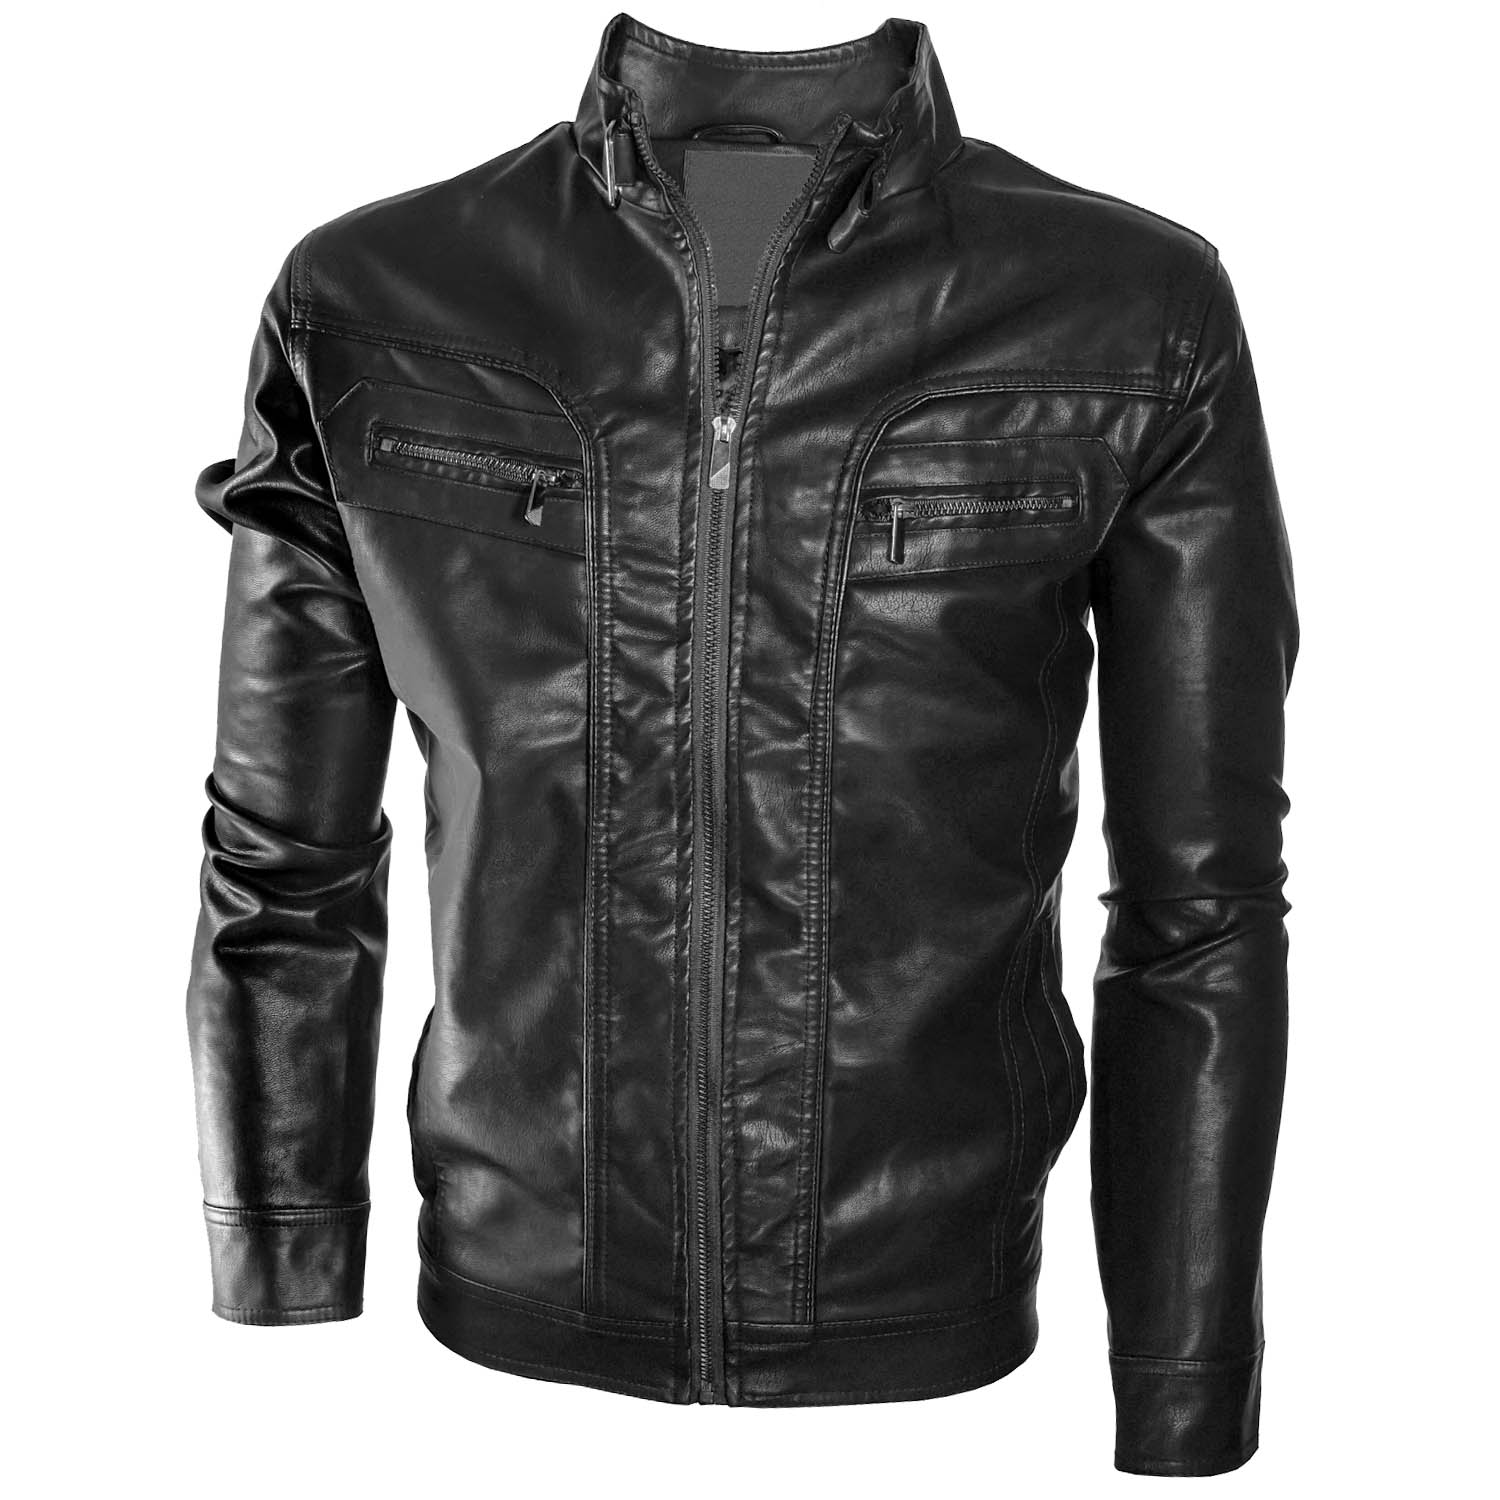 jackets jacket zara pin united quilted leather faux quilt motorcycle